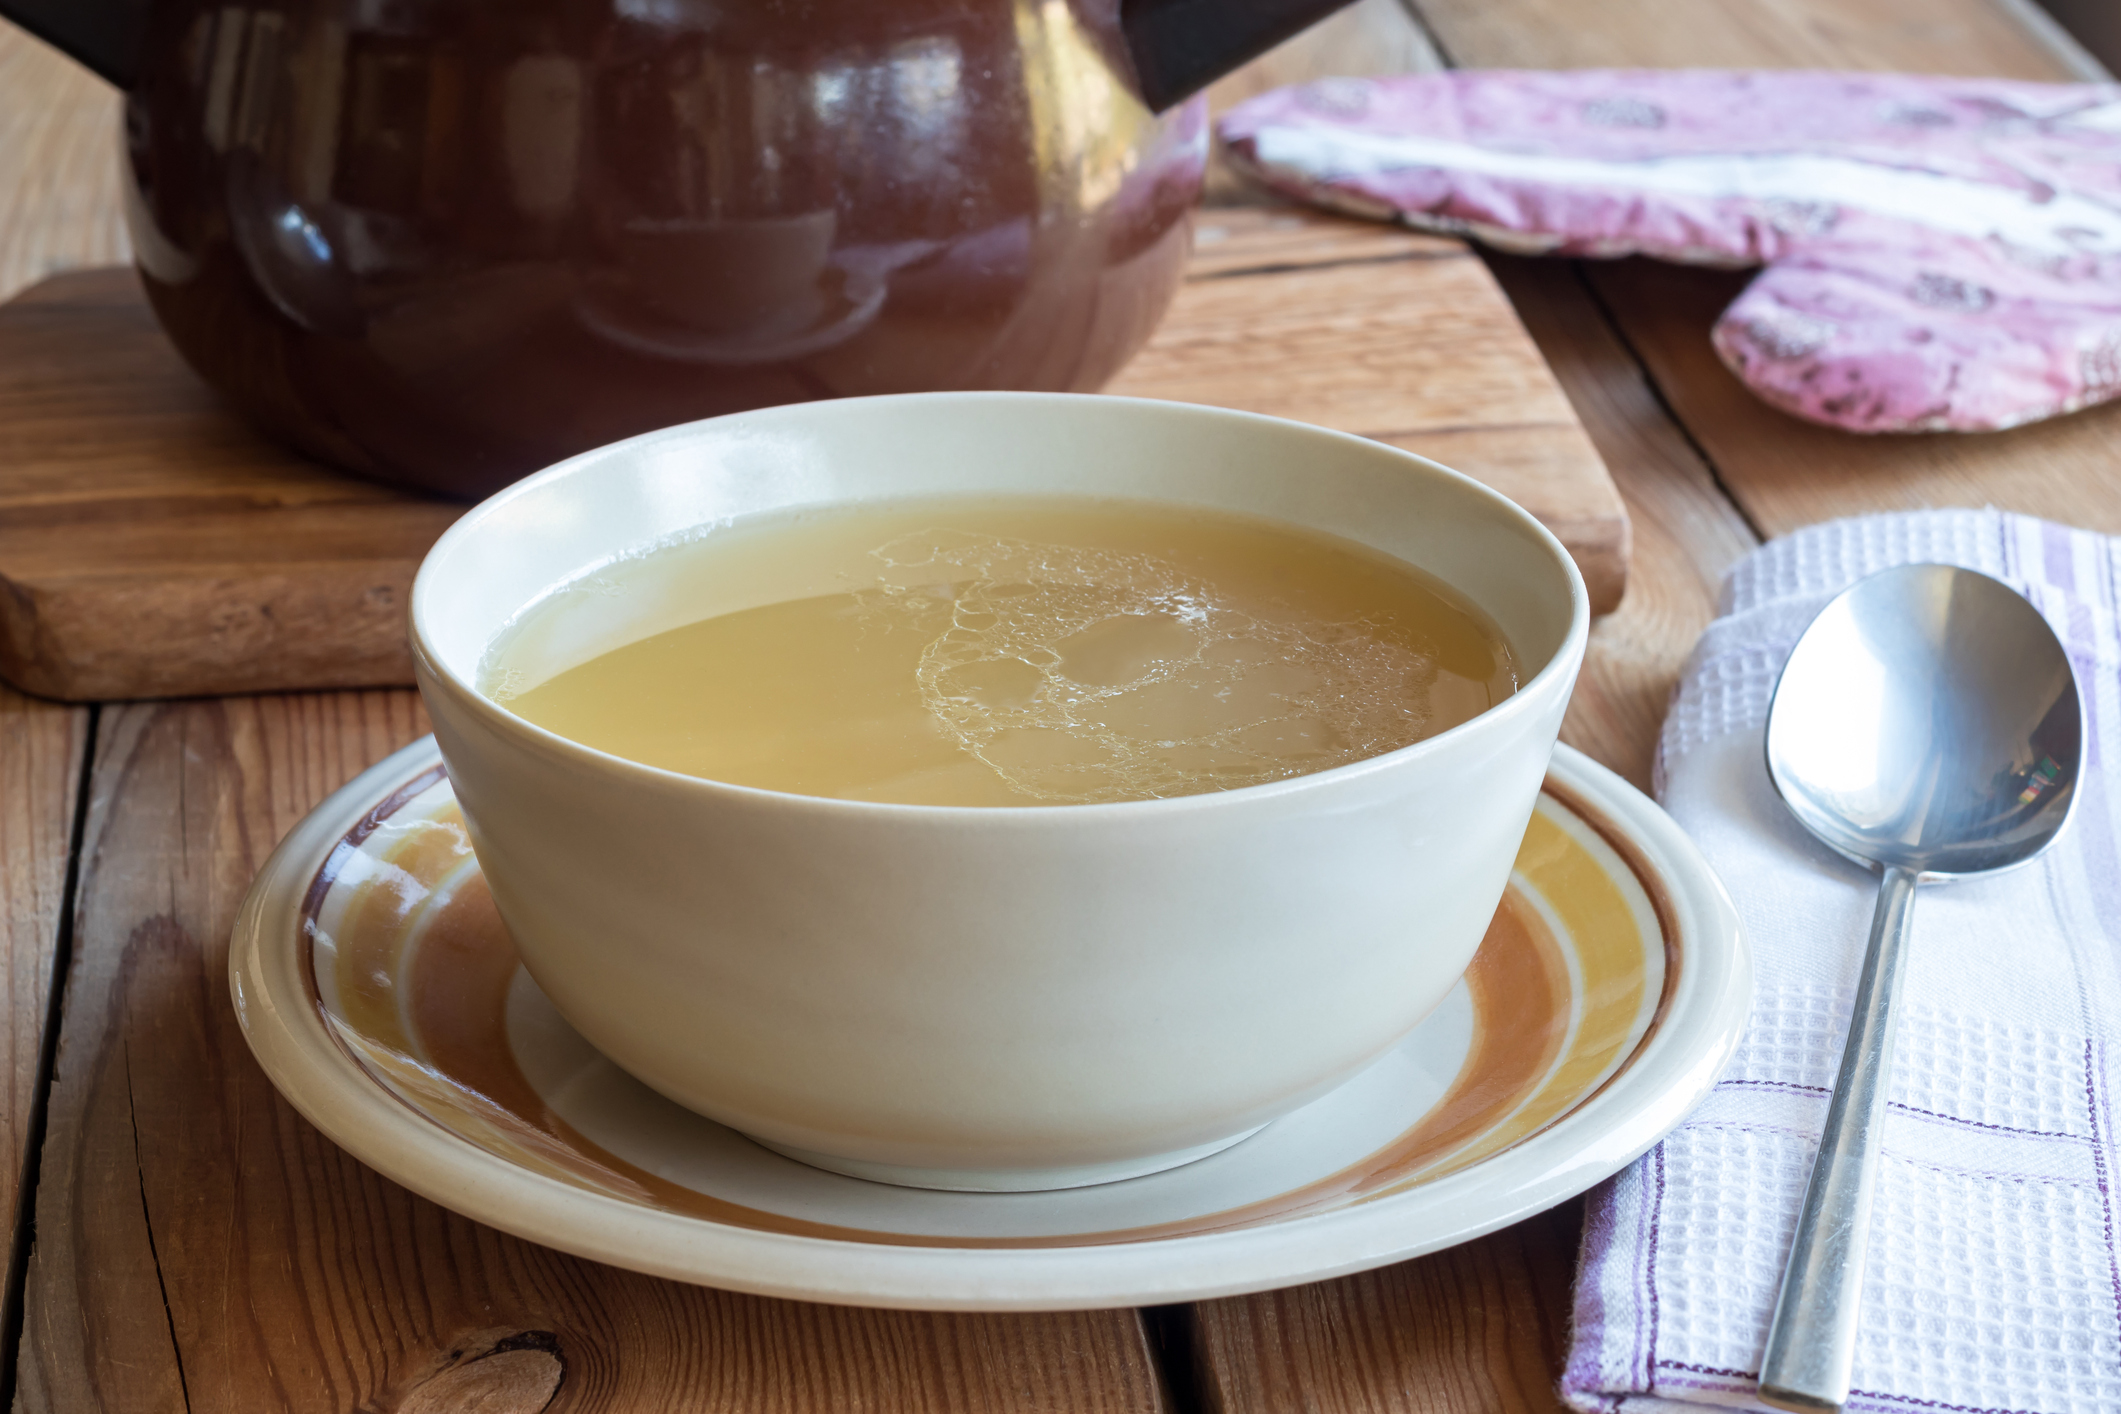 Bone broth made from chicken served in a soup bowl